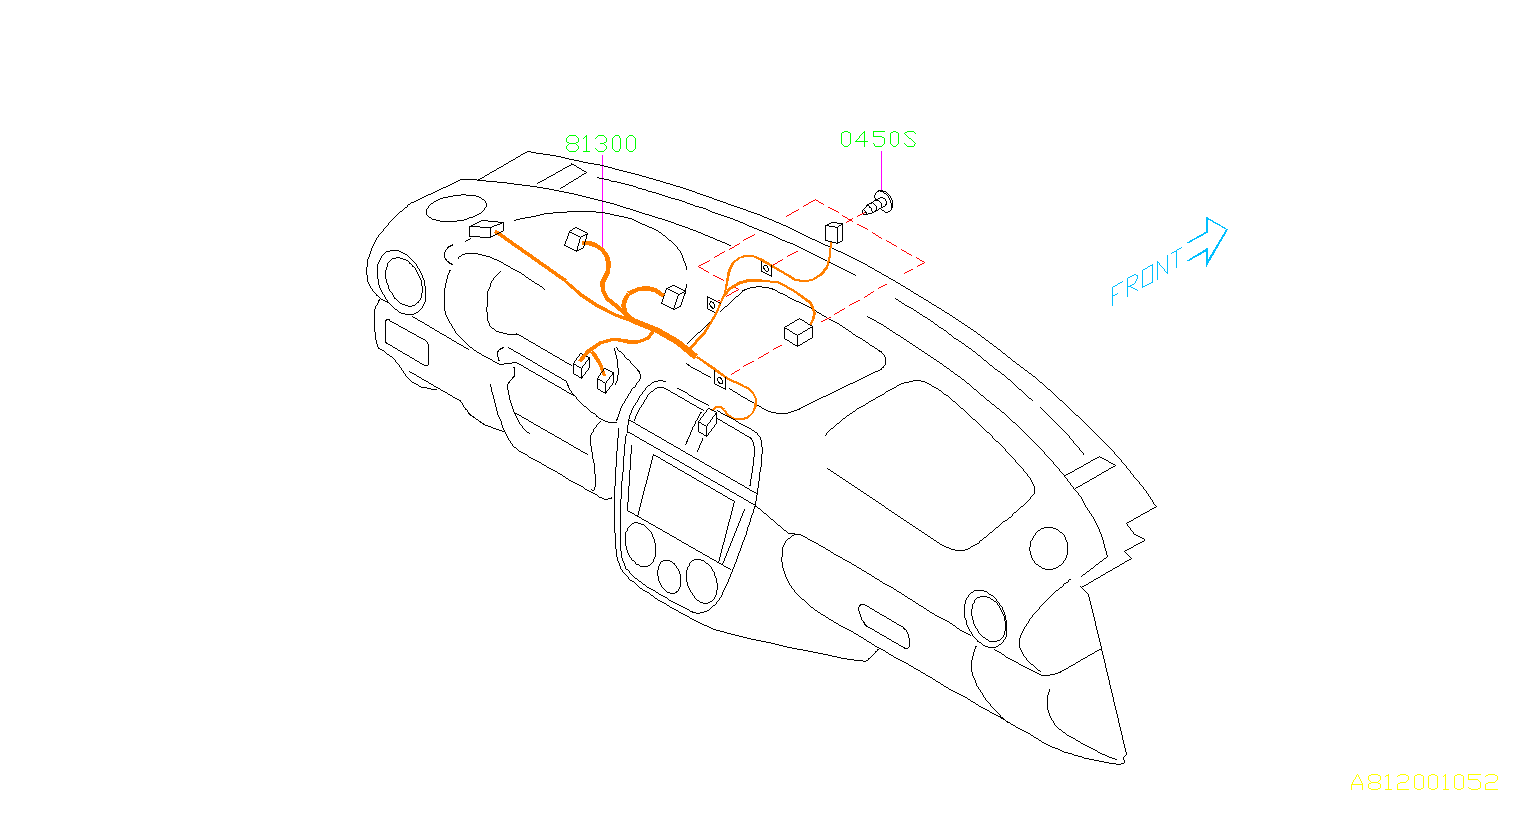 Subaru Impreza Harness-instrument panel. Wiring